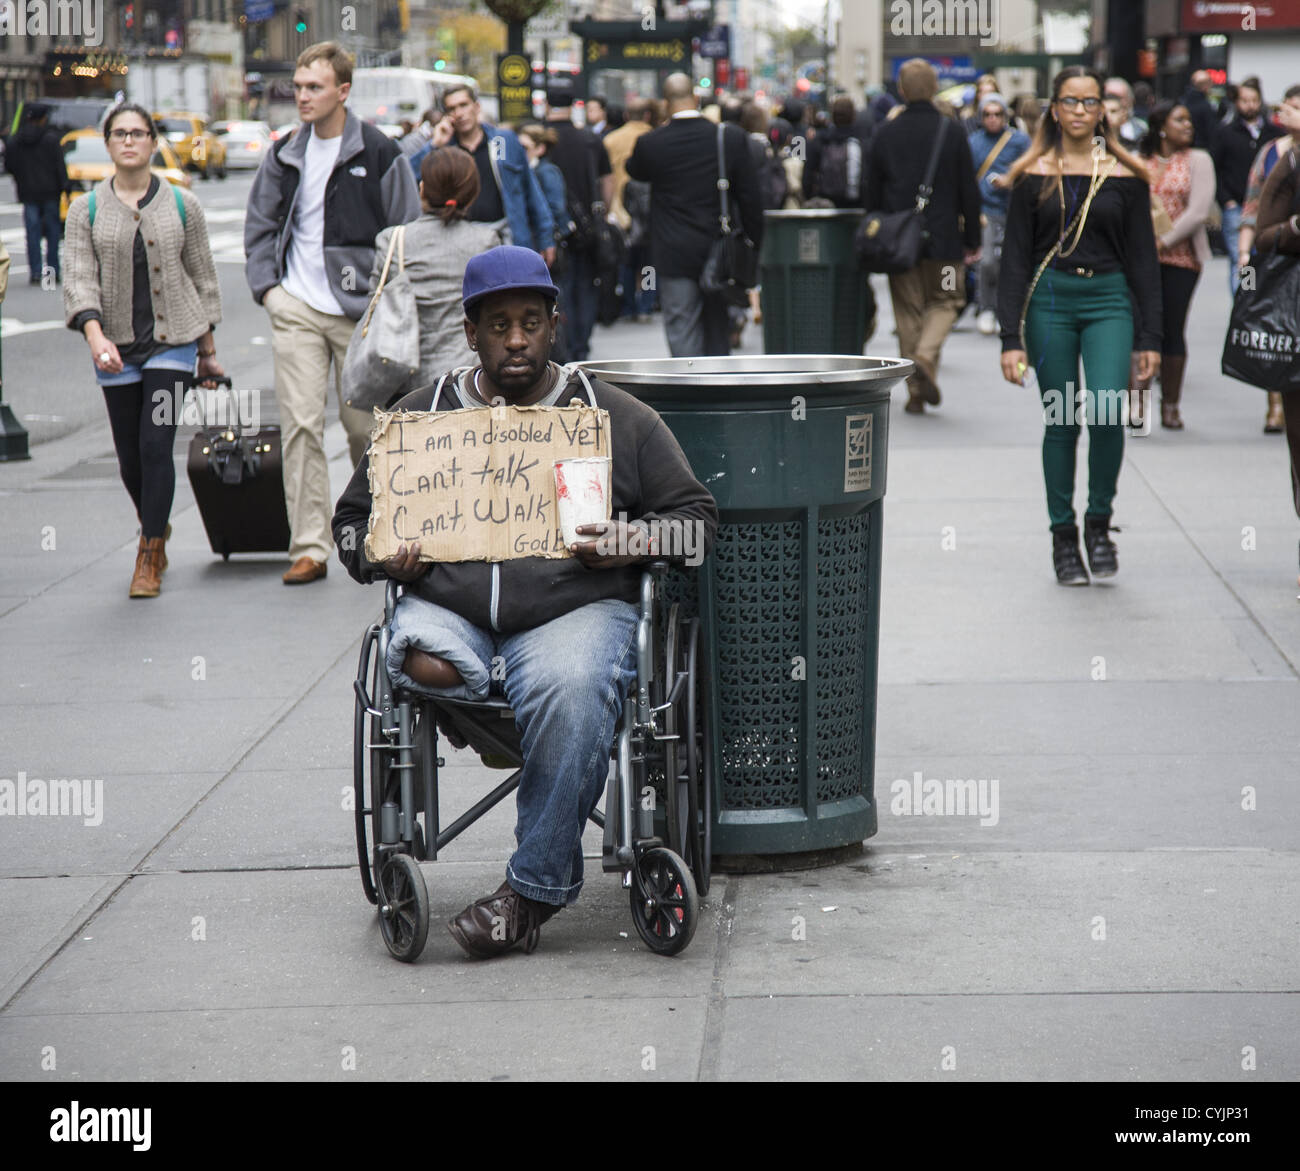 Disabled war veteran trying to raise some money on the street near Penn Station along 7th Avenue in Manhattan, NYC - Stock Image